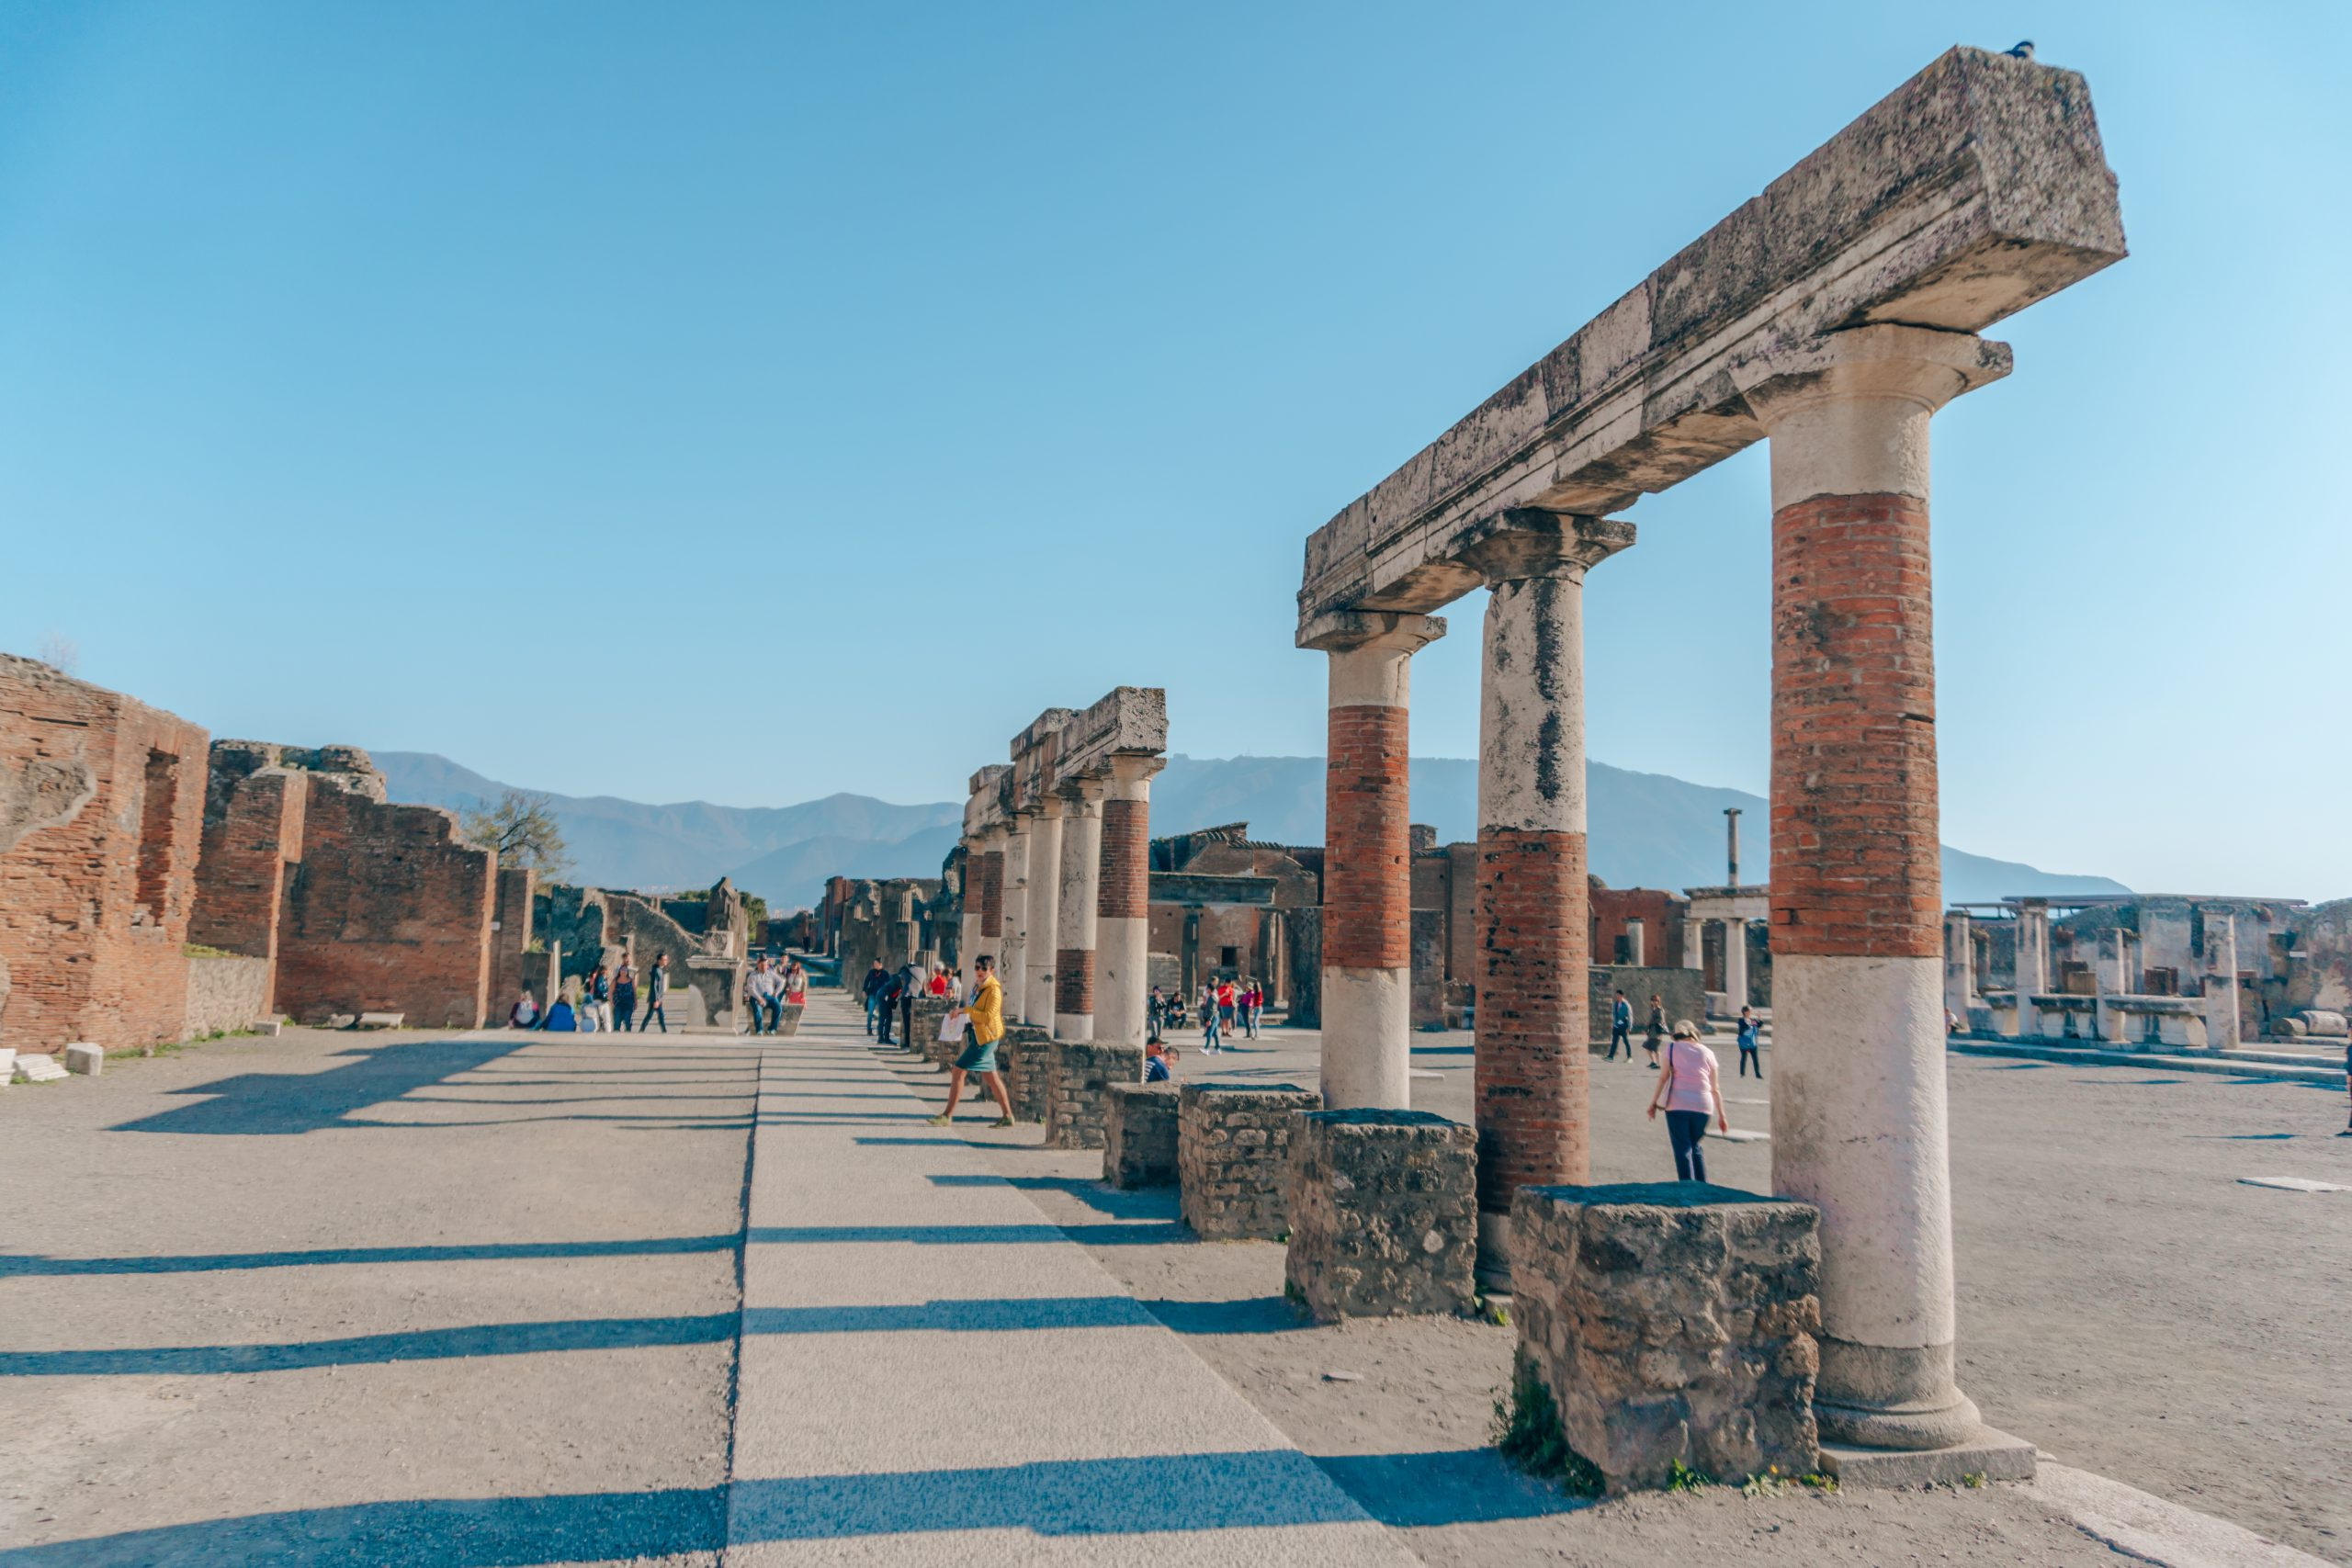 Pompeii: The City Frozen in Time